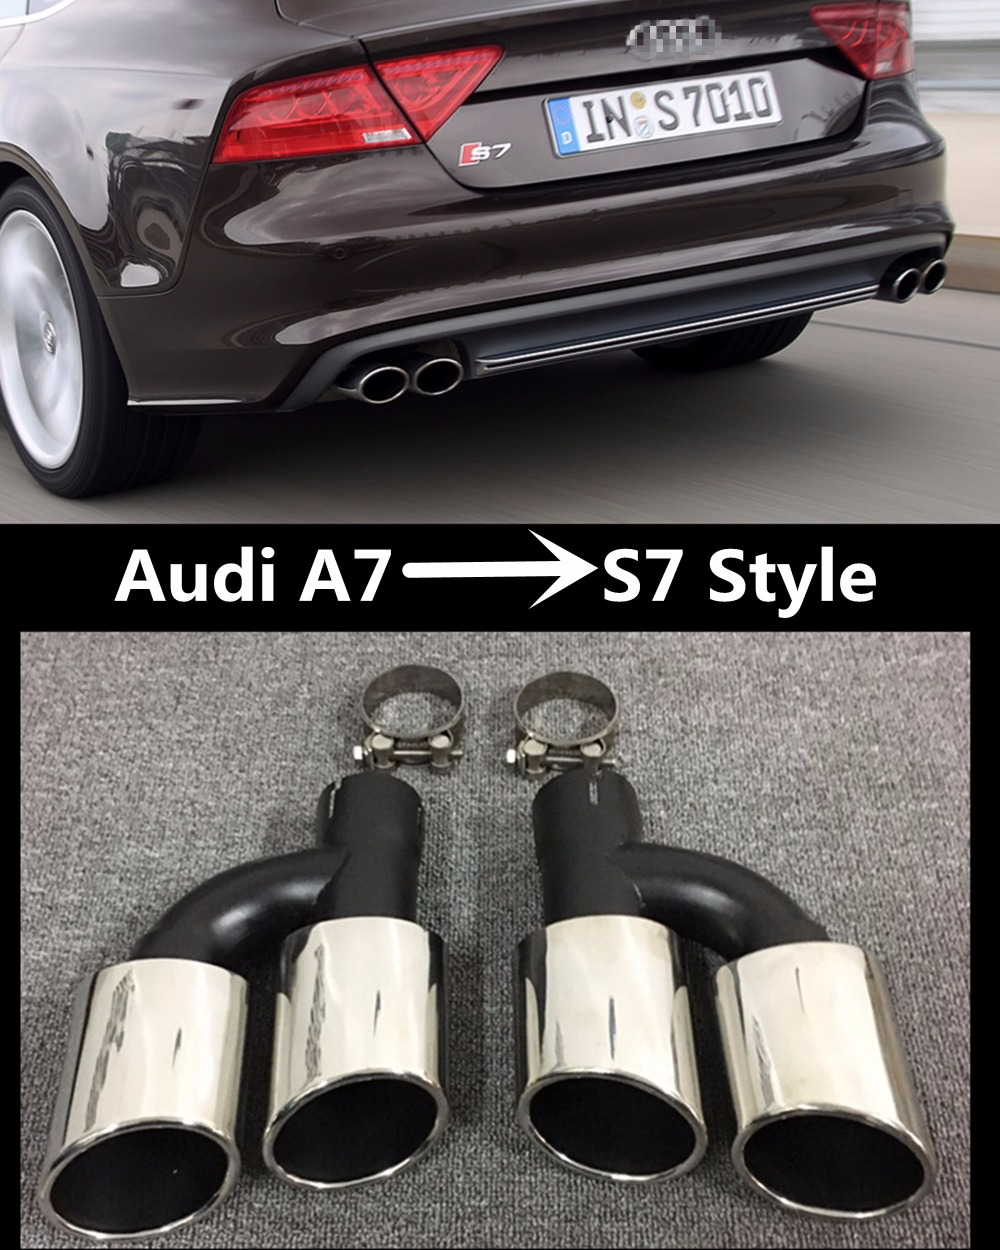 High quality  Statinless steel Auto Car Exhaust Tips Muffler tip pipe  for Audi A7 into S7 style 12-16  tail pipe car-styling one pair stainless steel exhaust tip auto car muffler end tips fit for mercedes benz w220 s500 s430 01 05